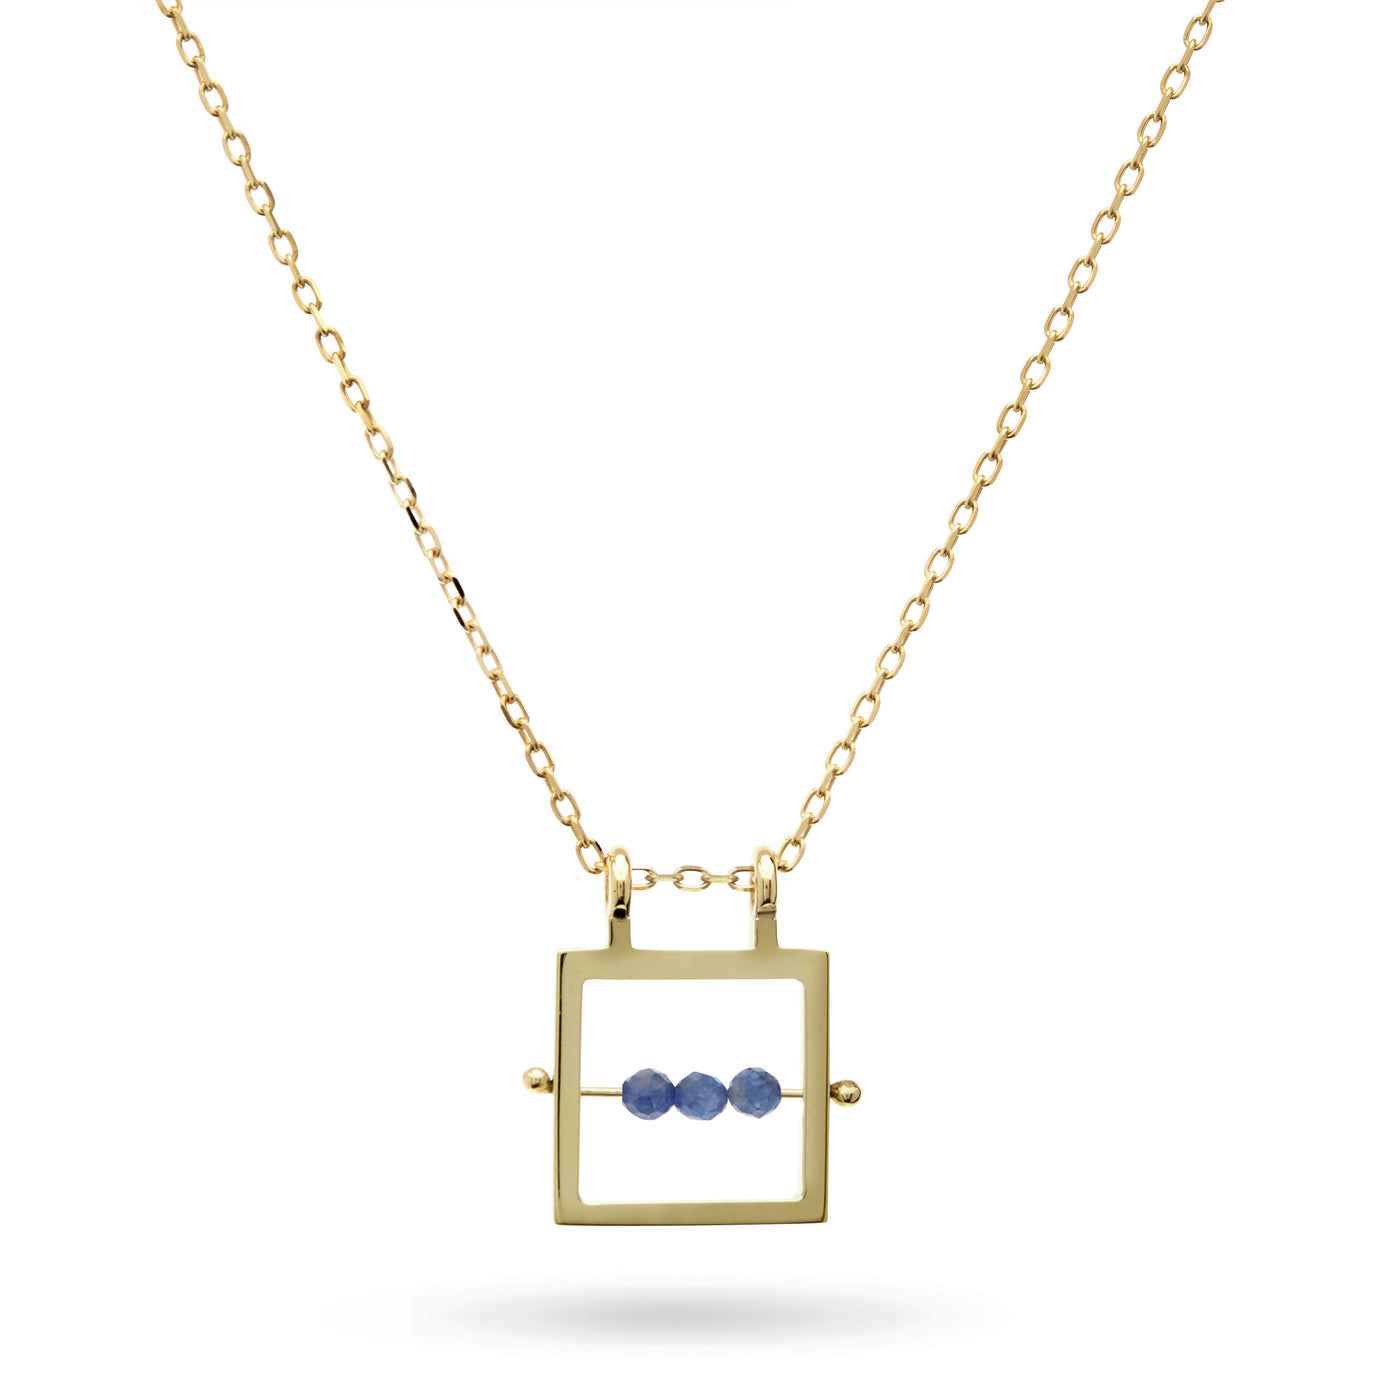 Square Sapphire Abacus Necklace